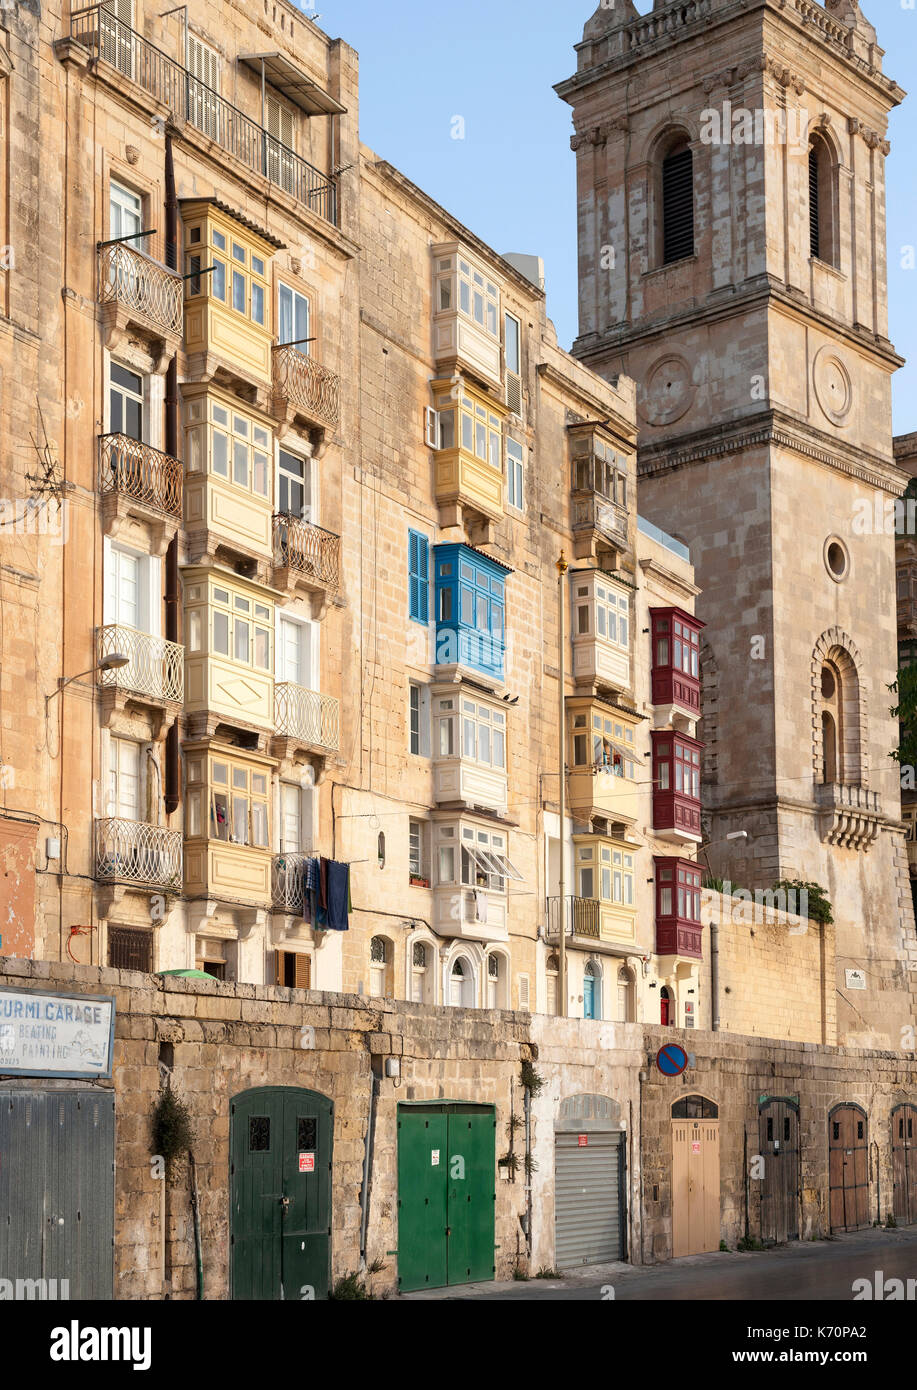 Buildings in the old town of Valletta, the capital of Malta. - Stock Image